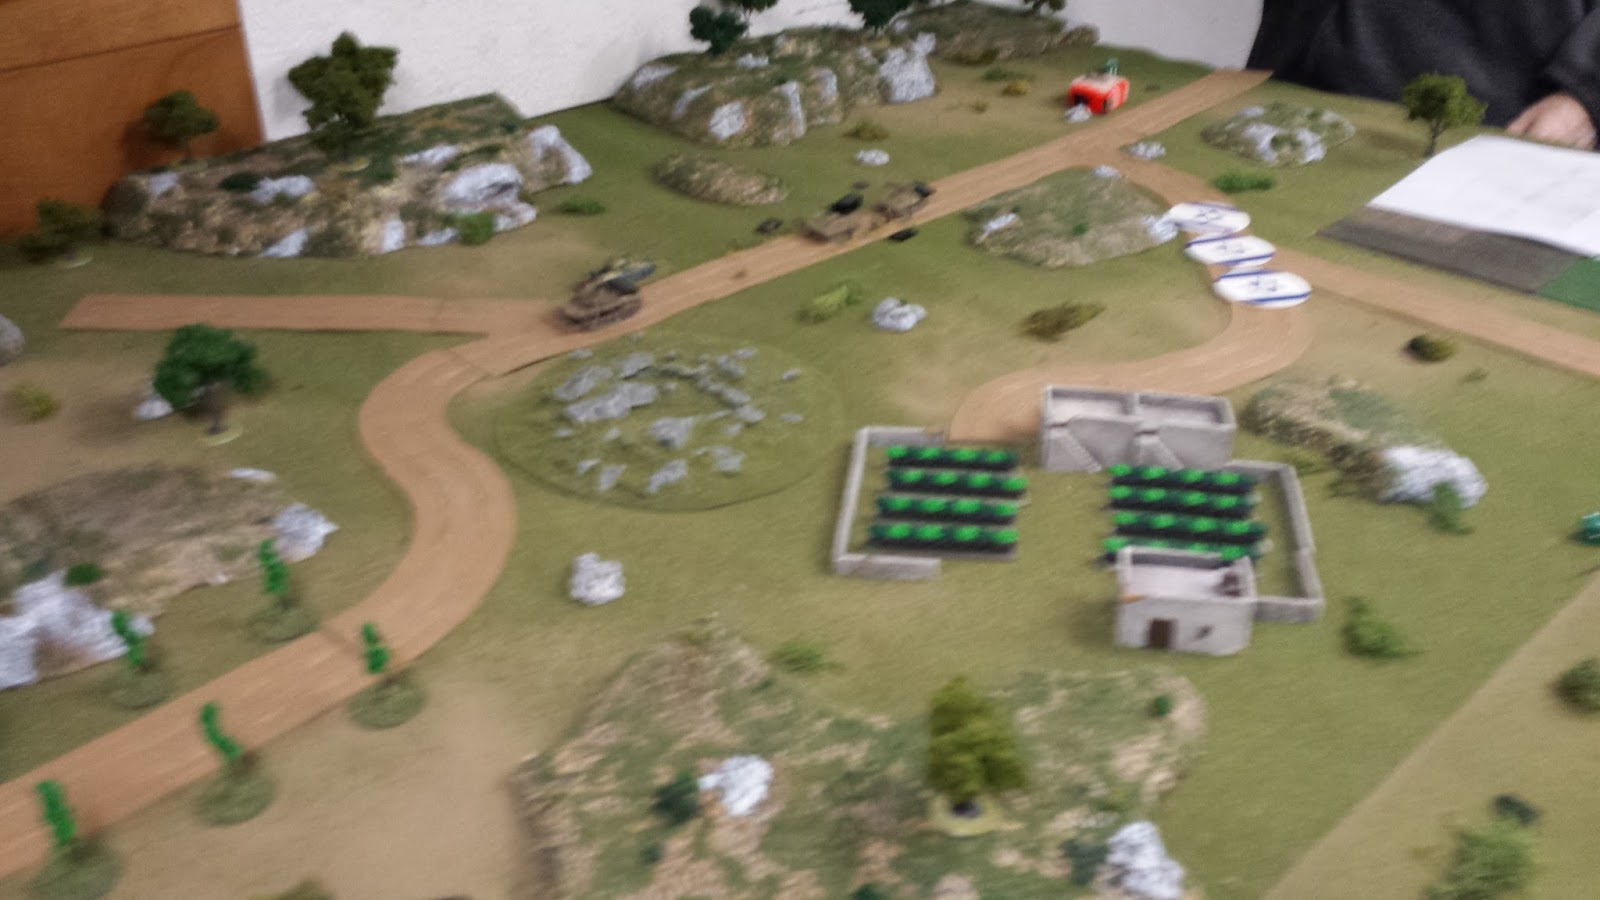 An Israeli Magach and two Zeldas advance down the road while unknown Israeli forces move on the walled orchard.